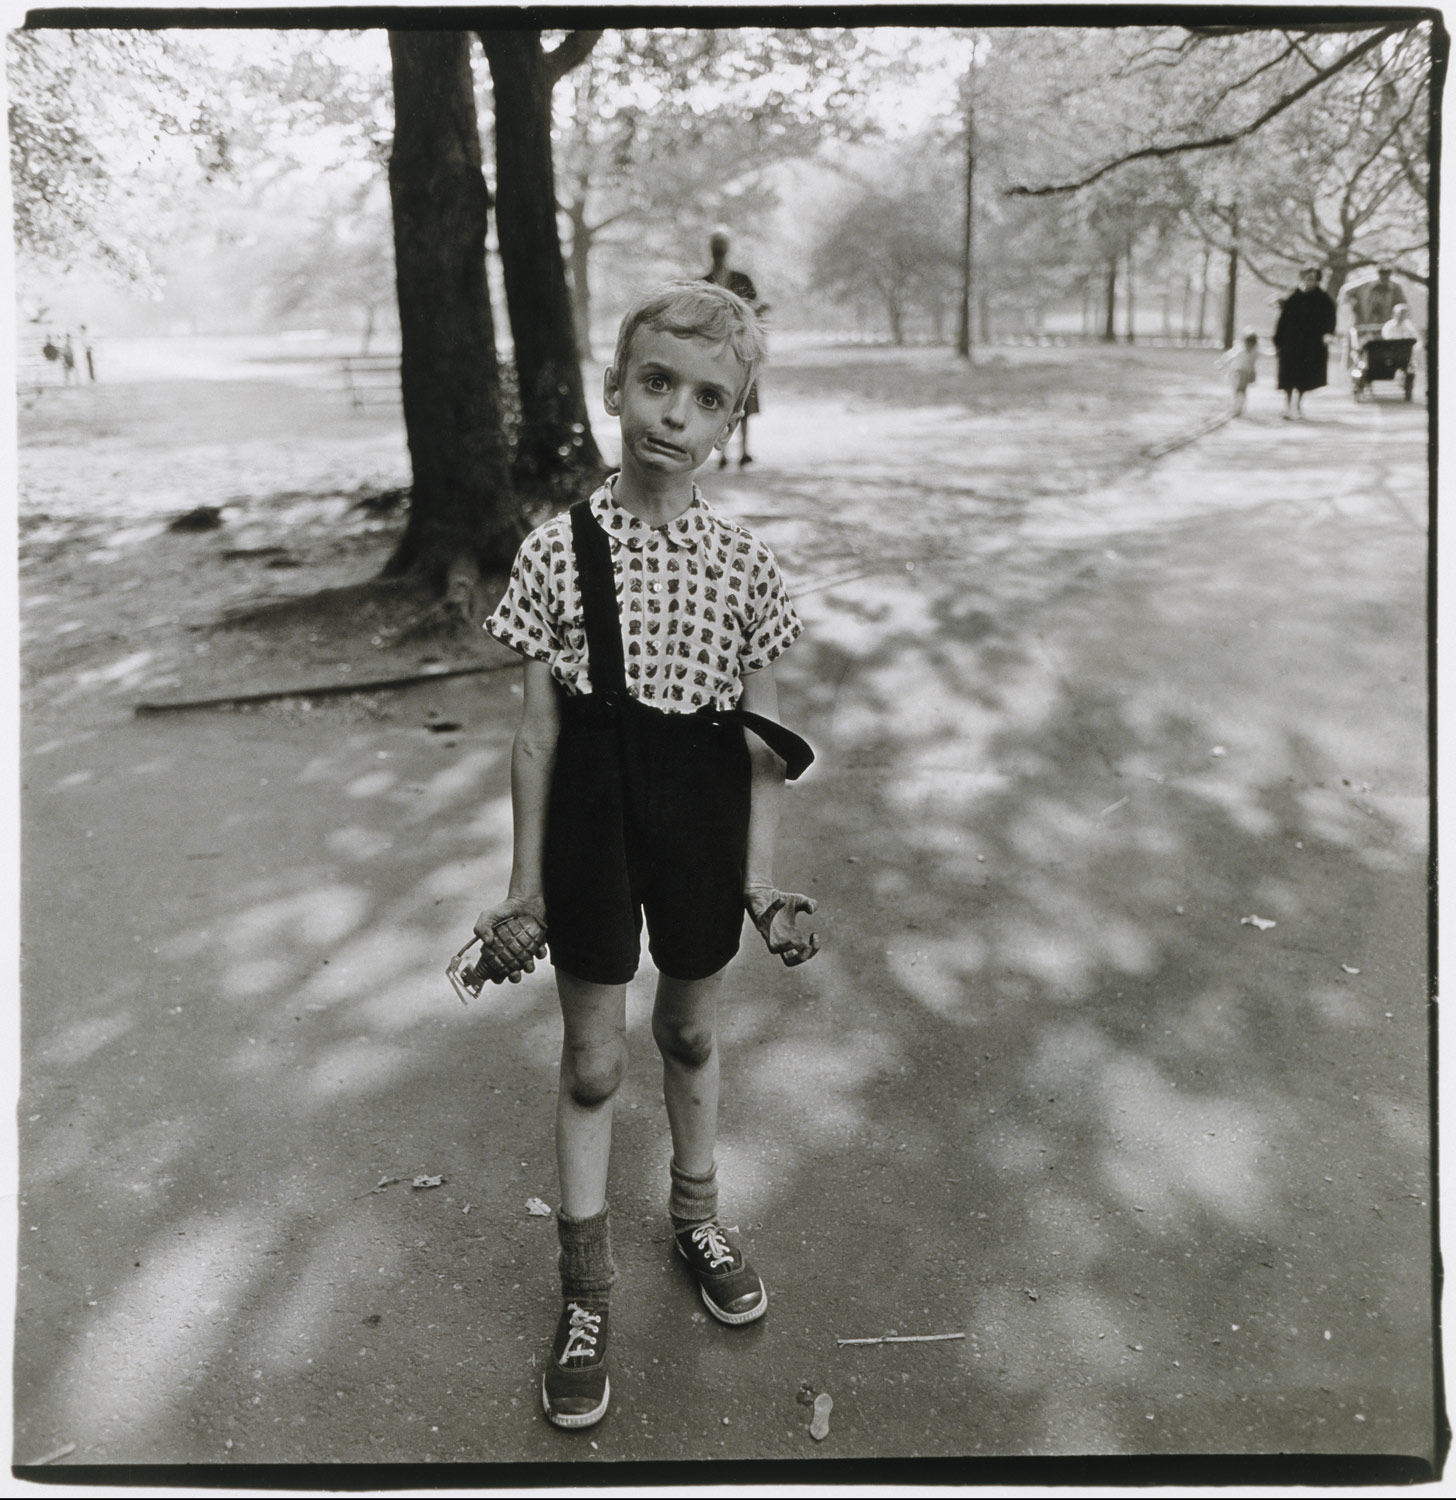 Child with a toy handgranade in Central Park